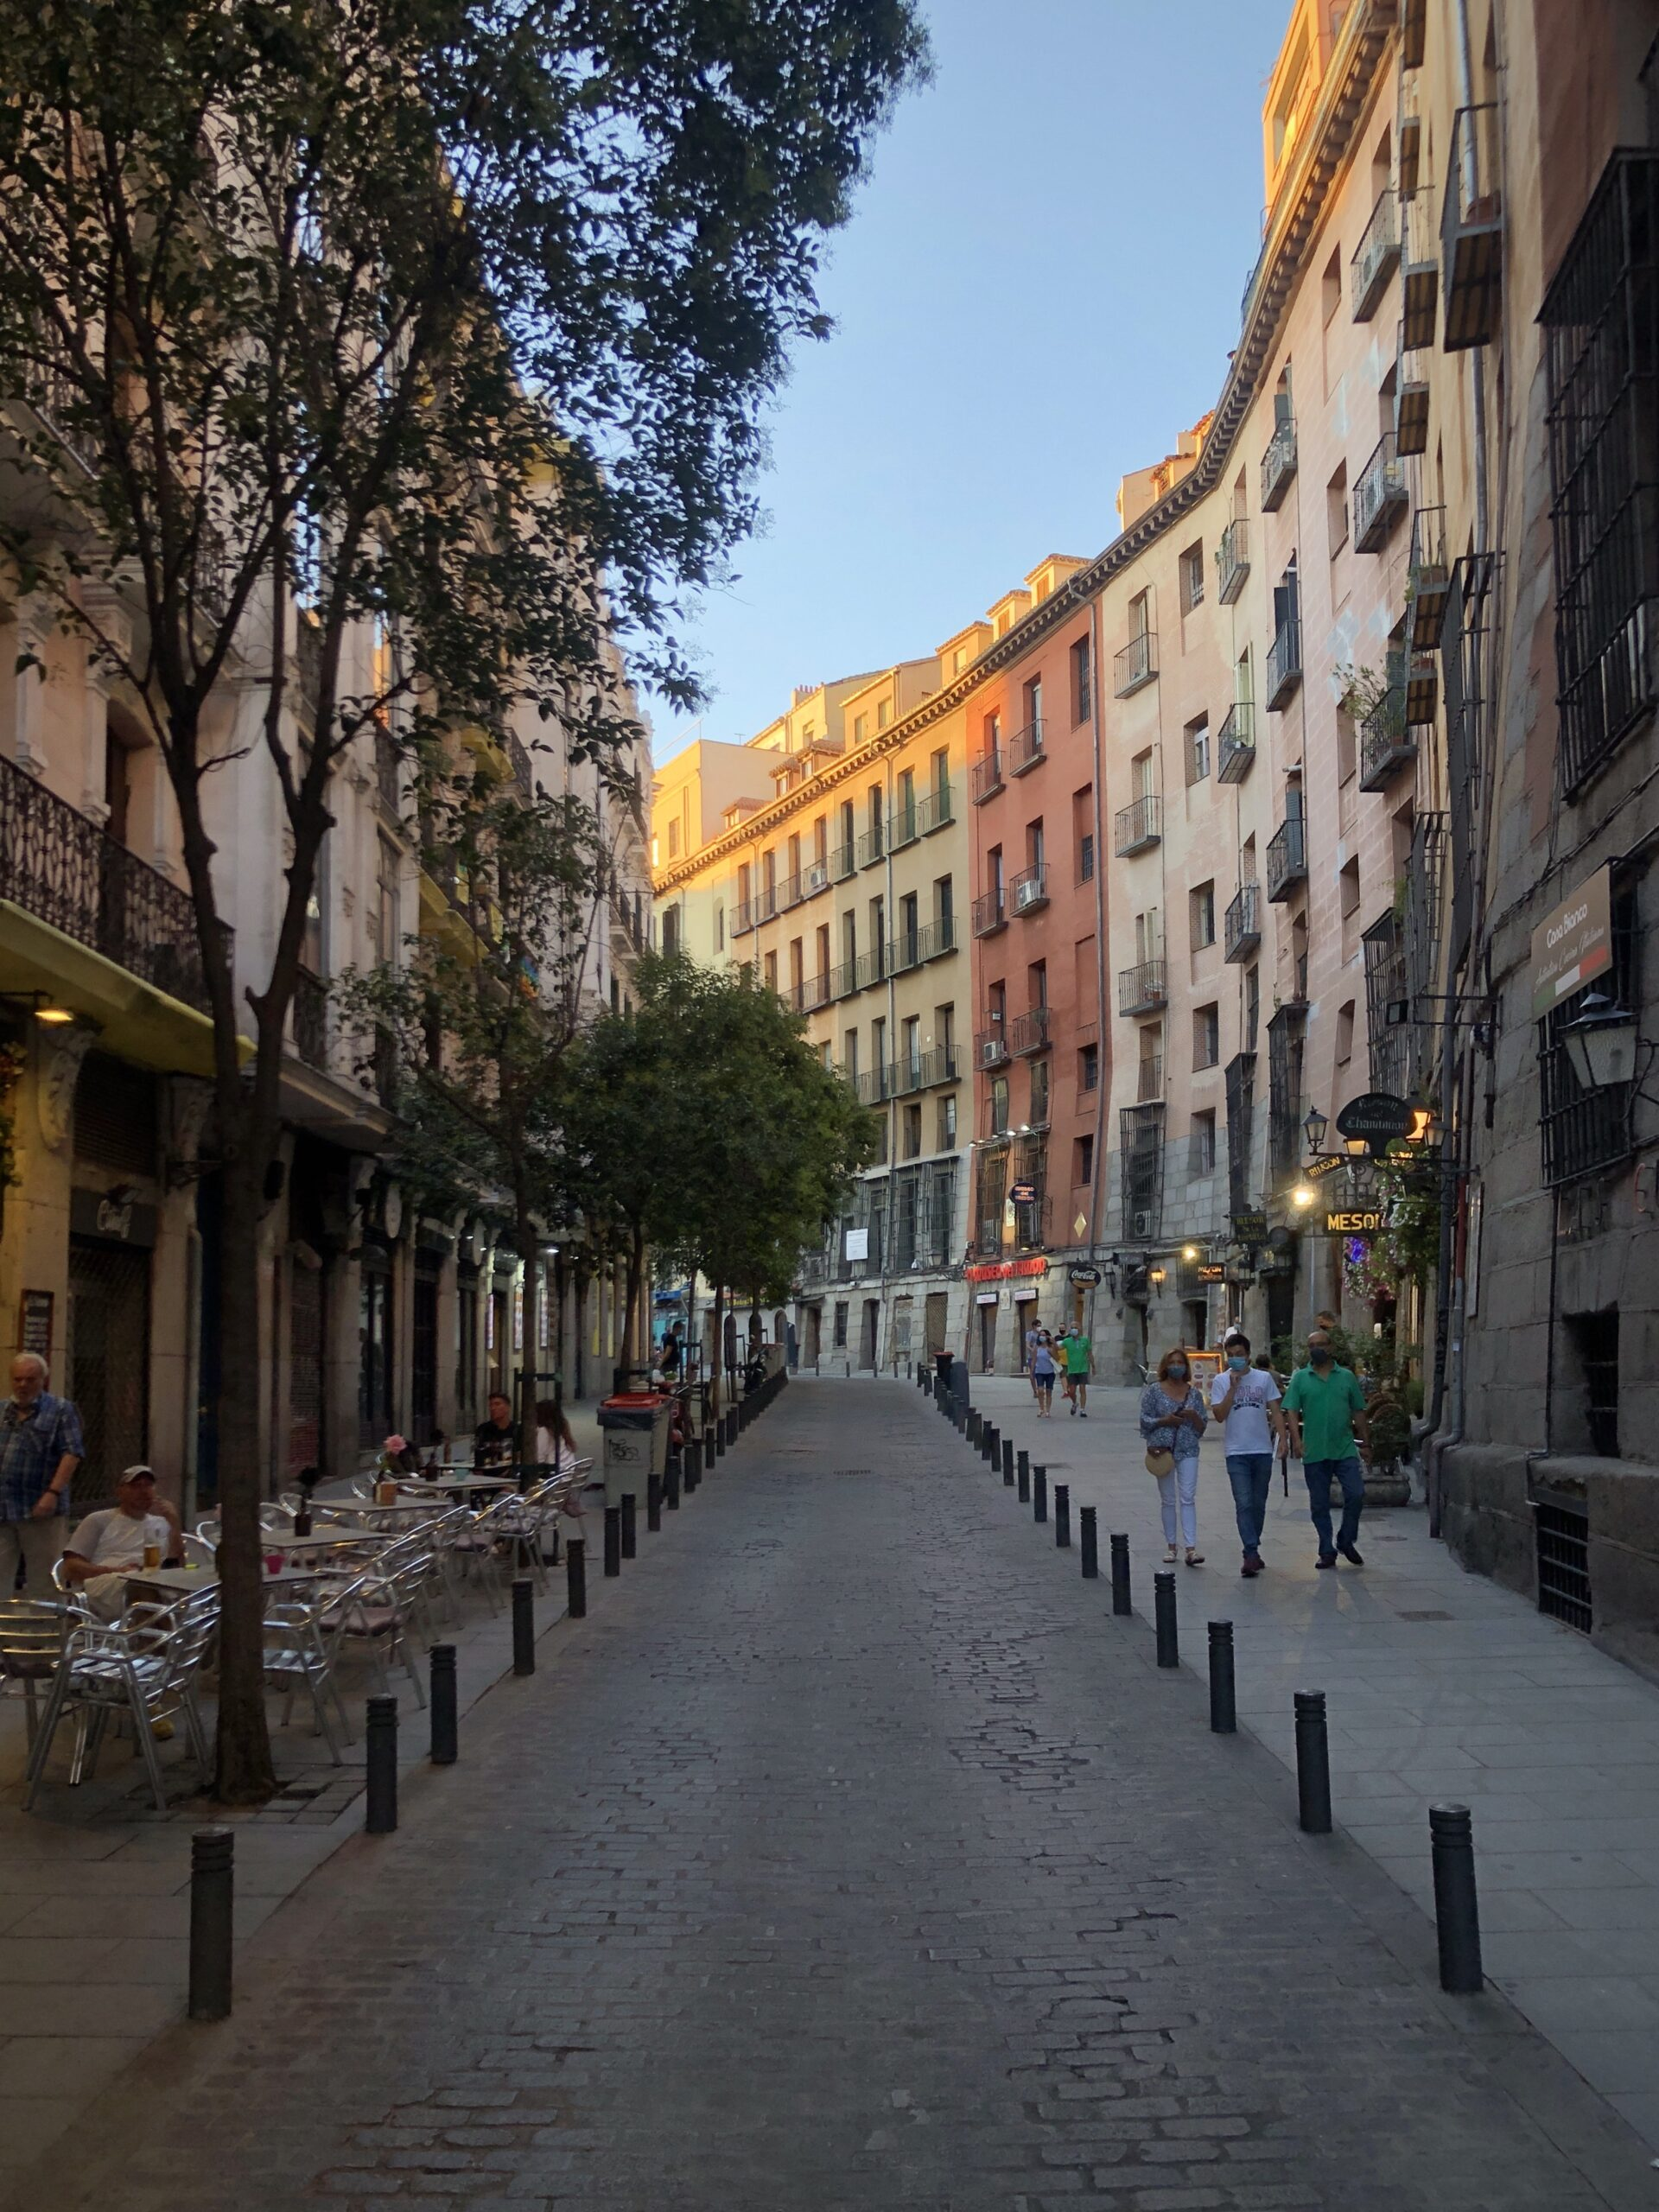 A street in the ancient part of Madrid, lit in the warm sun of an evening.